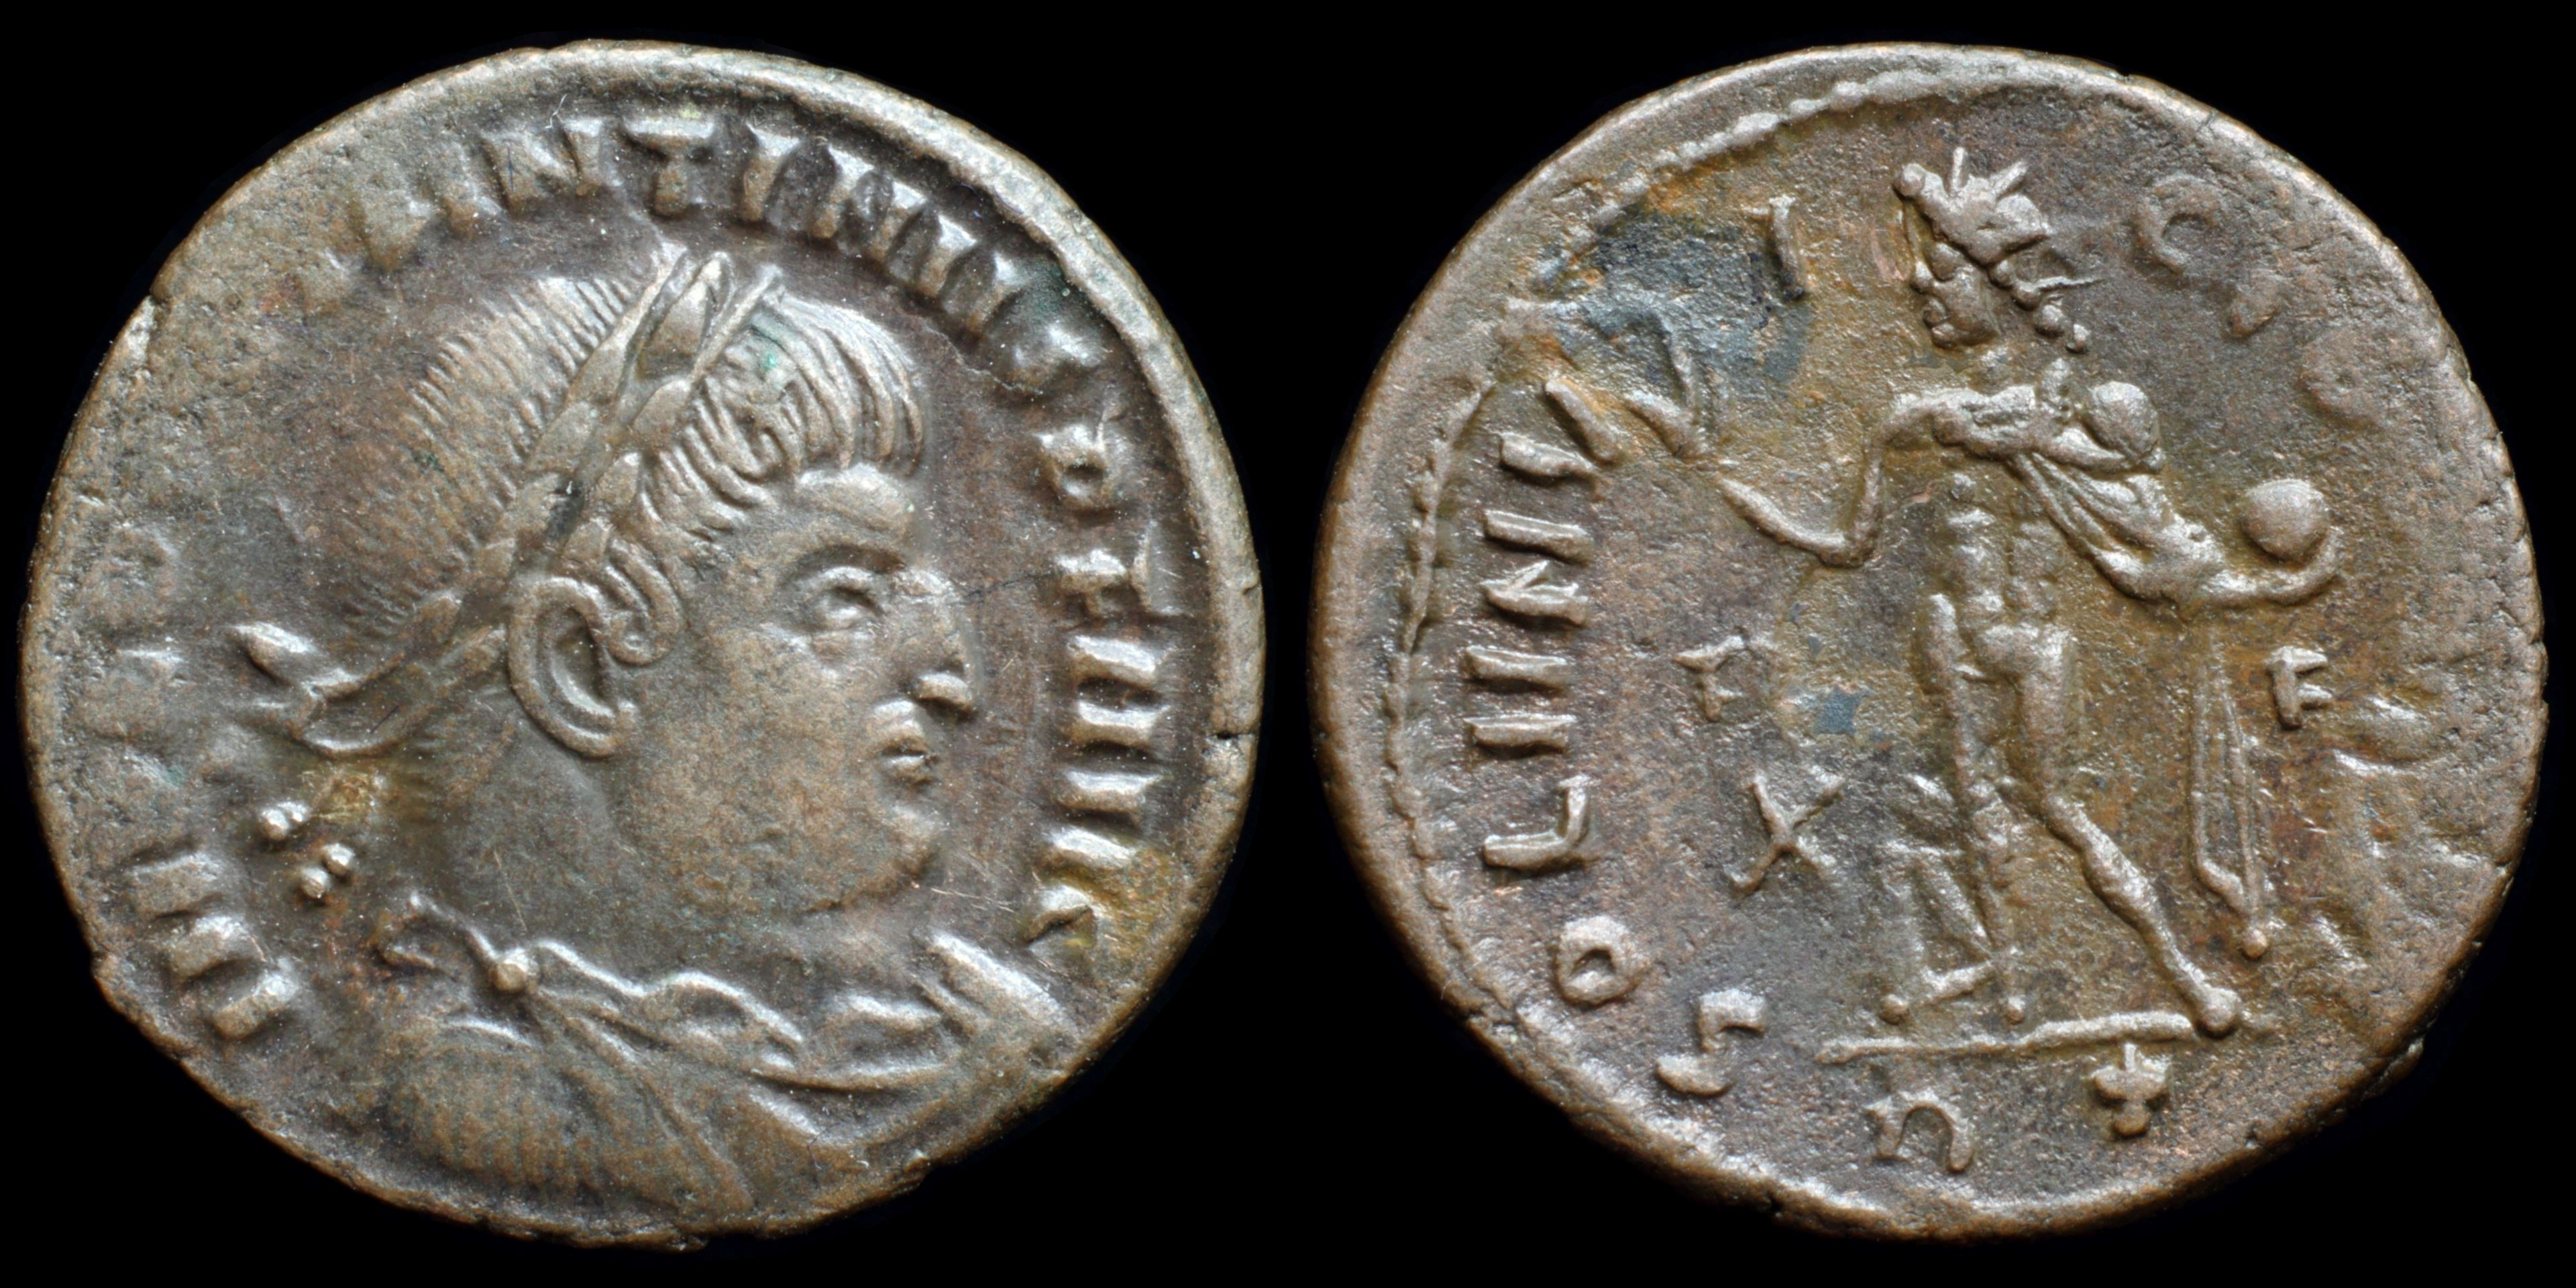 /Files/Images/Coinsite/CoinDB/396_Constantine_Sol_Invictus_Rome.jpg